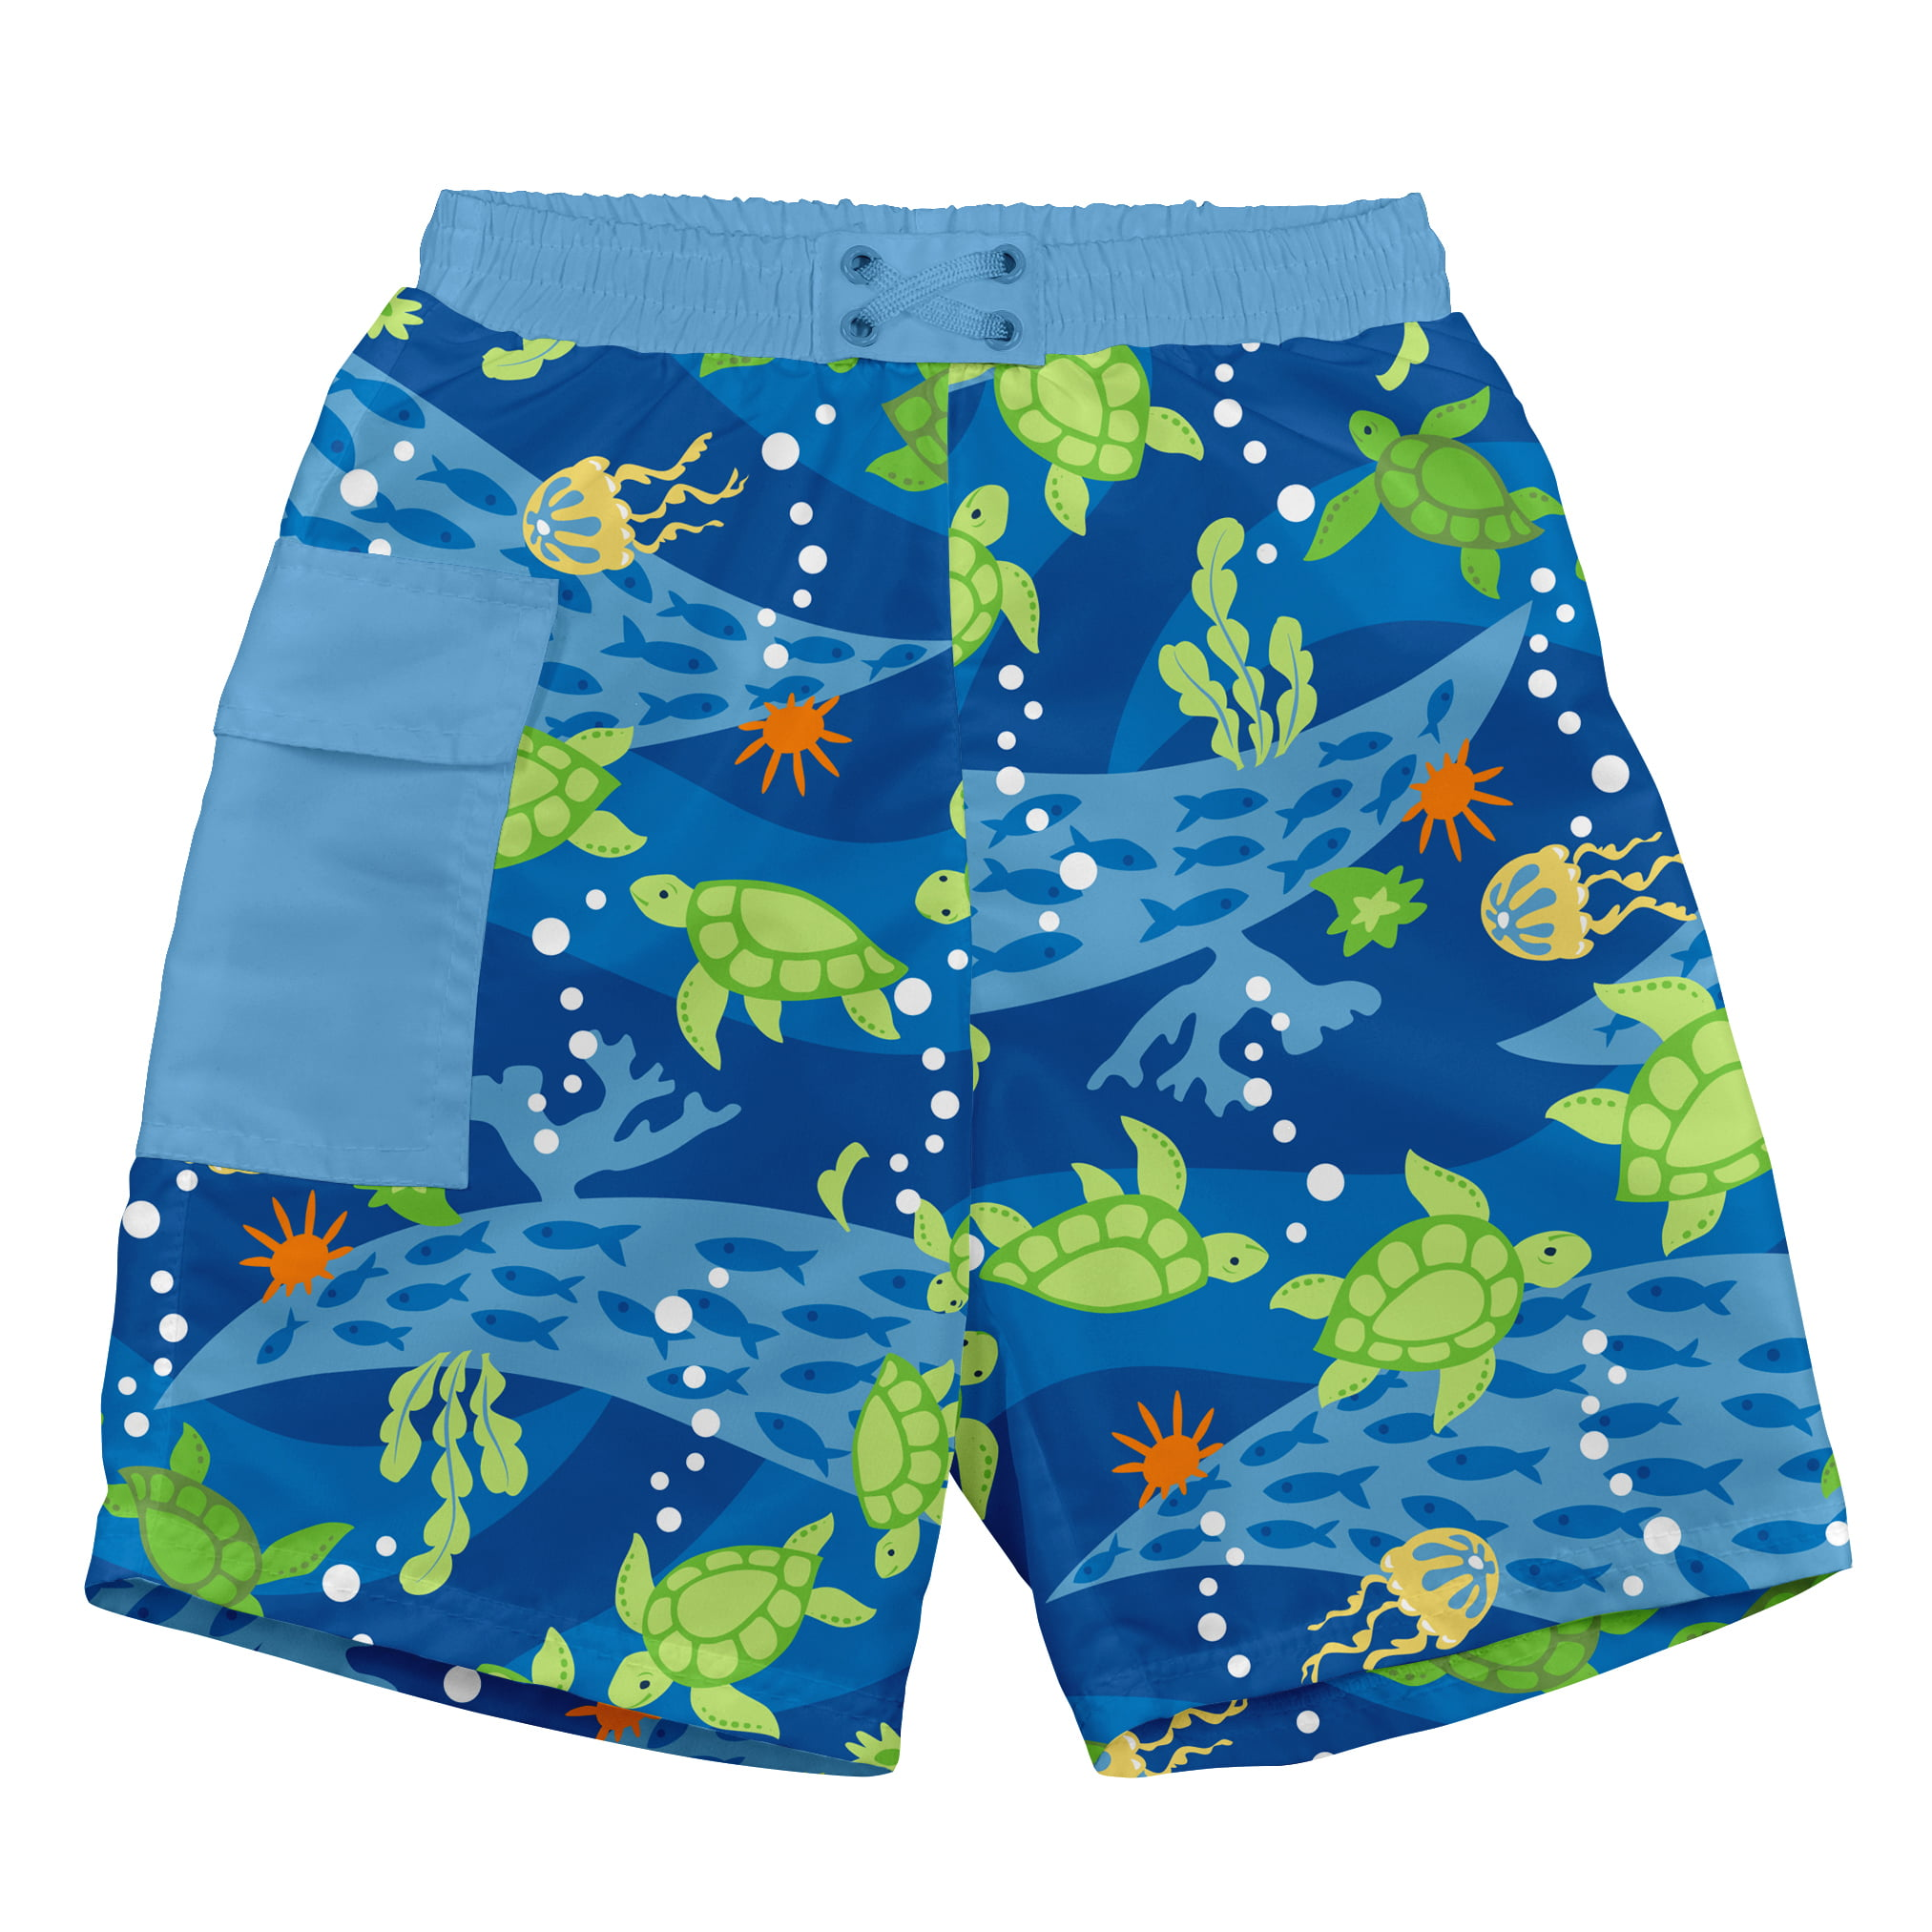 Baby Reusable Swim Diapers Adjustable /& Washable Swimsuit Diapers Toddler Swimwear for Boys and Girls 1T-3T